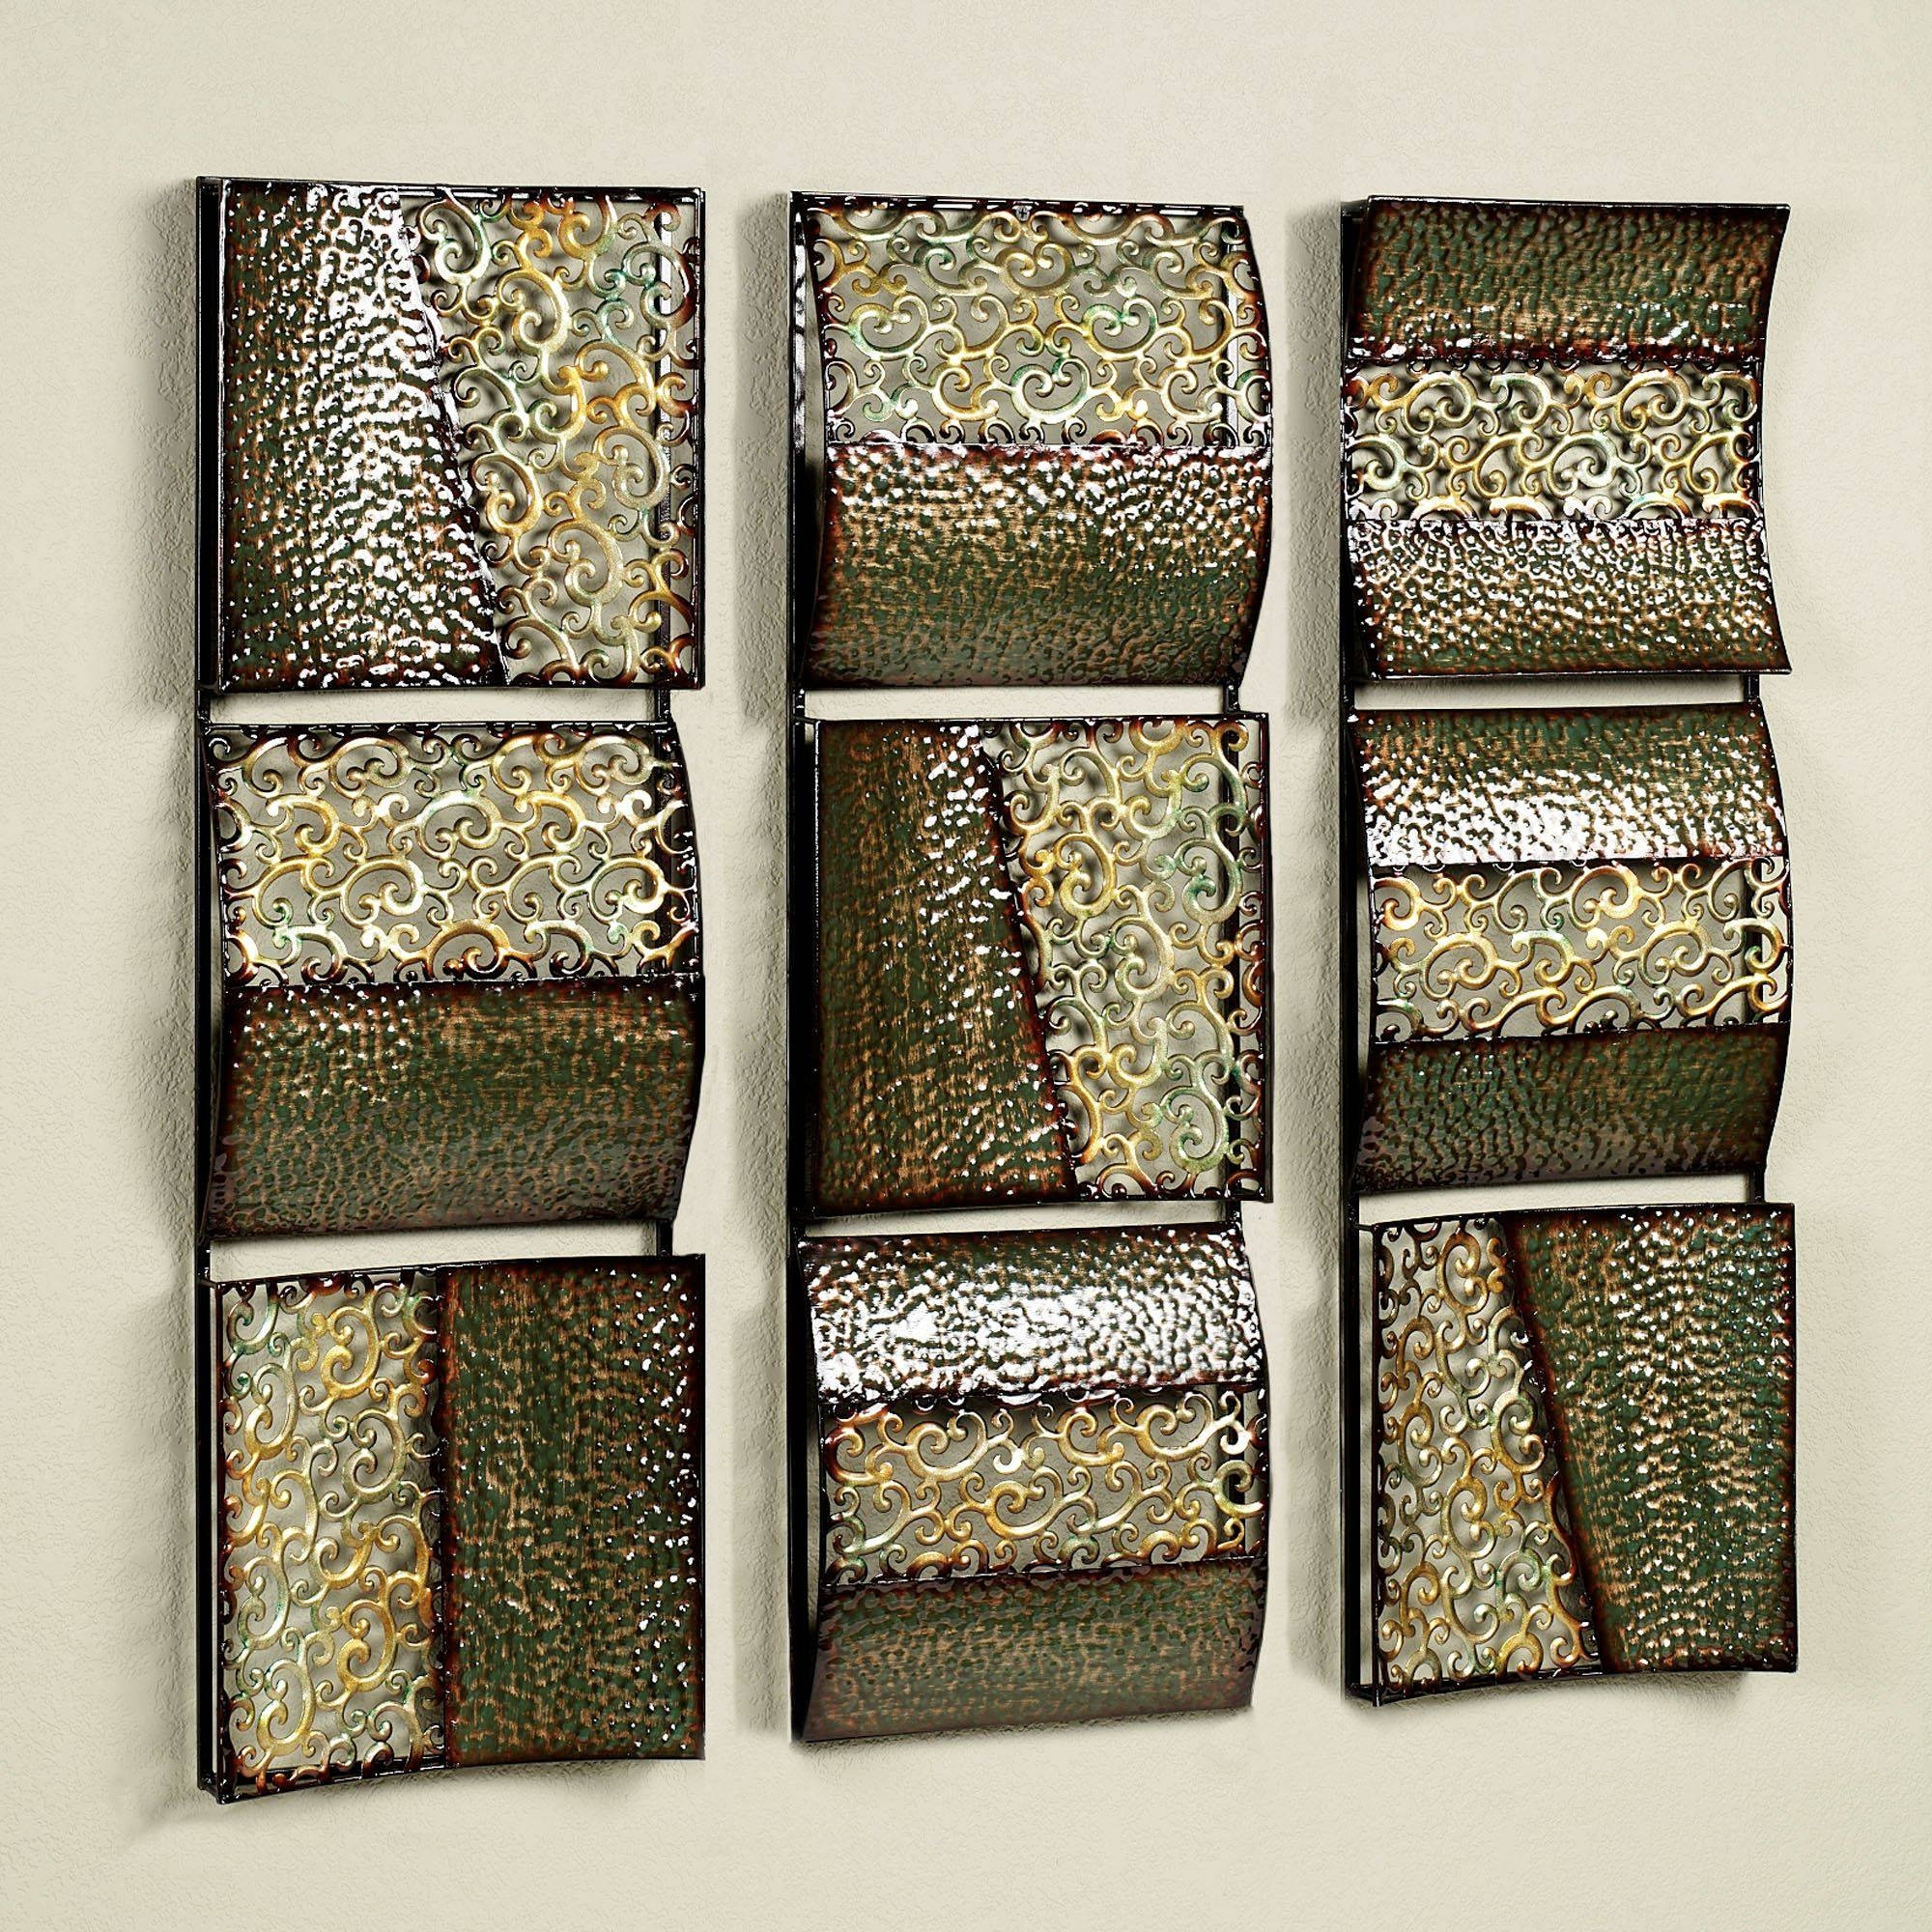 Wall Art Designs: Metal Wall Art Panels Summer Scents Wall Art Intended For Most Popular Decorative Metal Wall Art Panels (View 10 of 20)